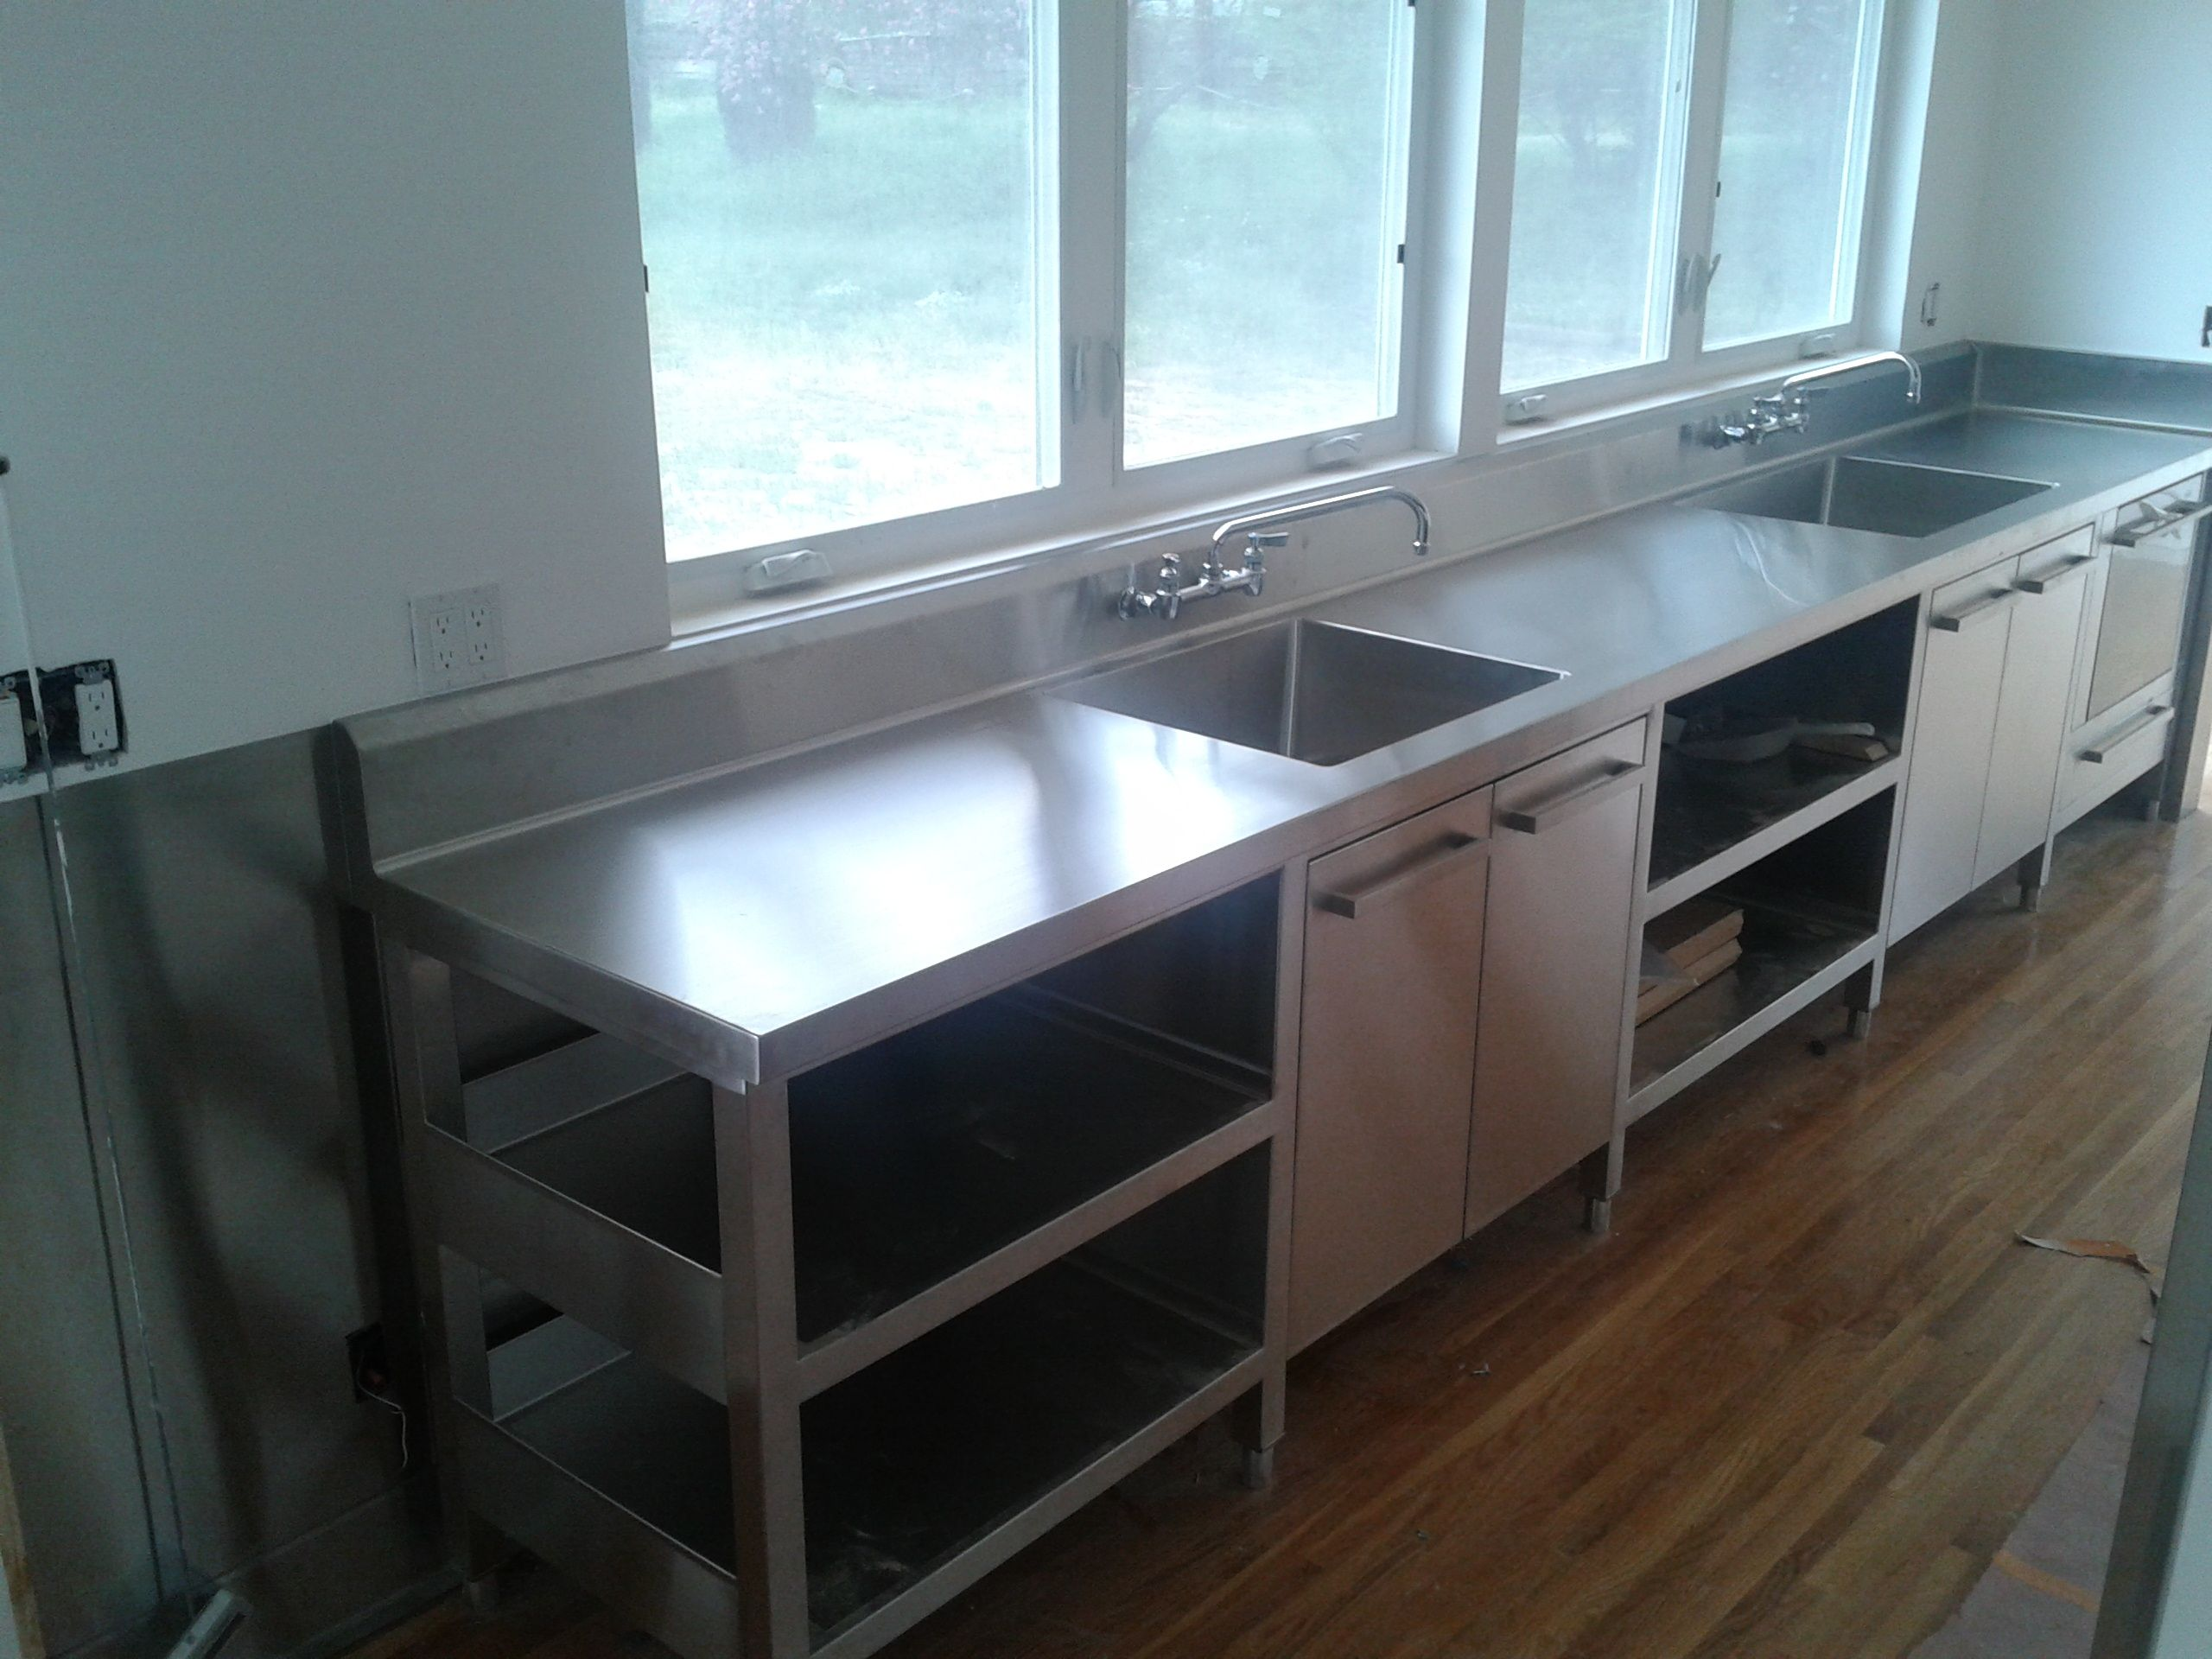 shelving stainless steel fitted units mercial kitchen large